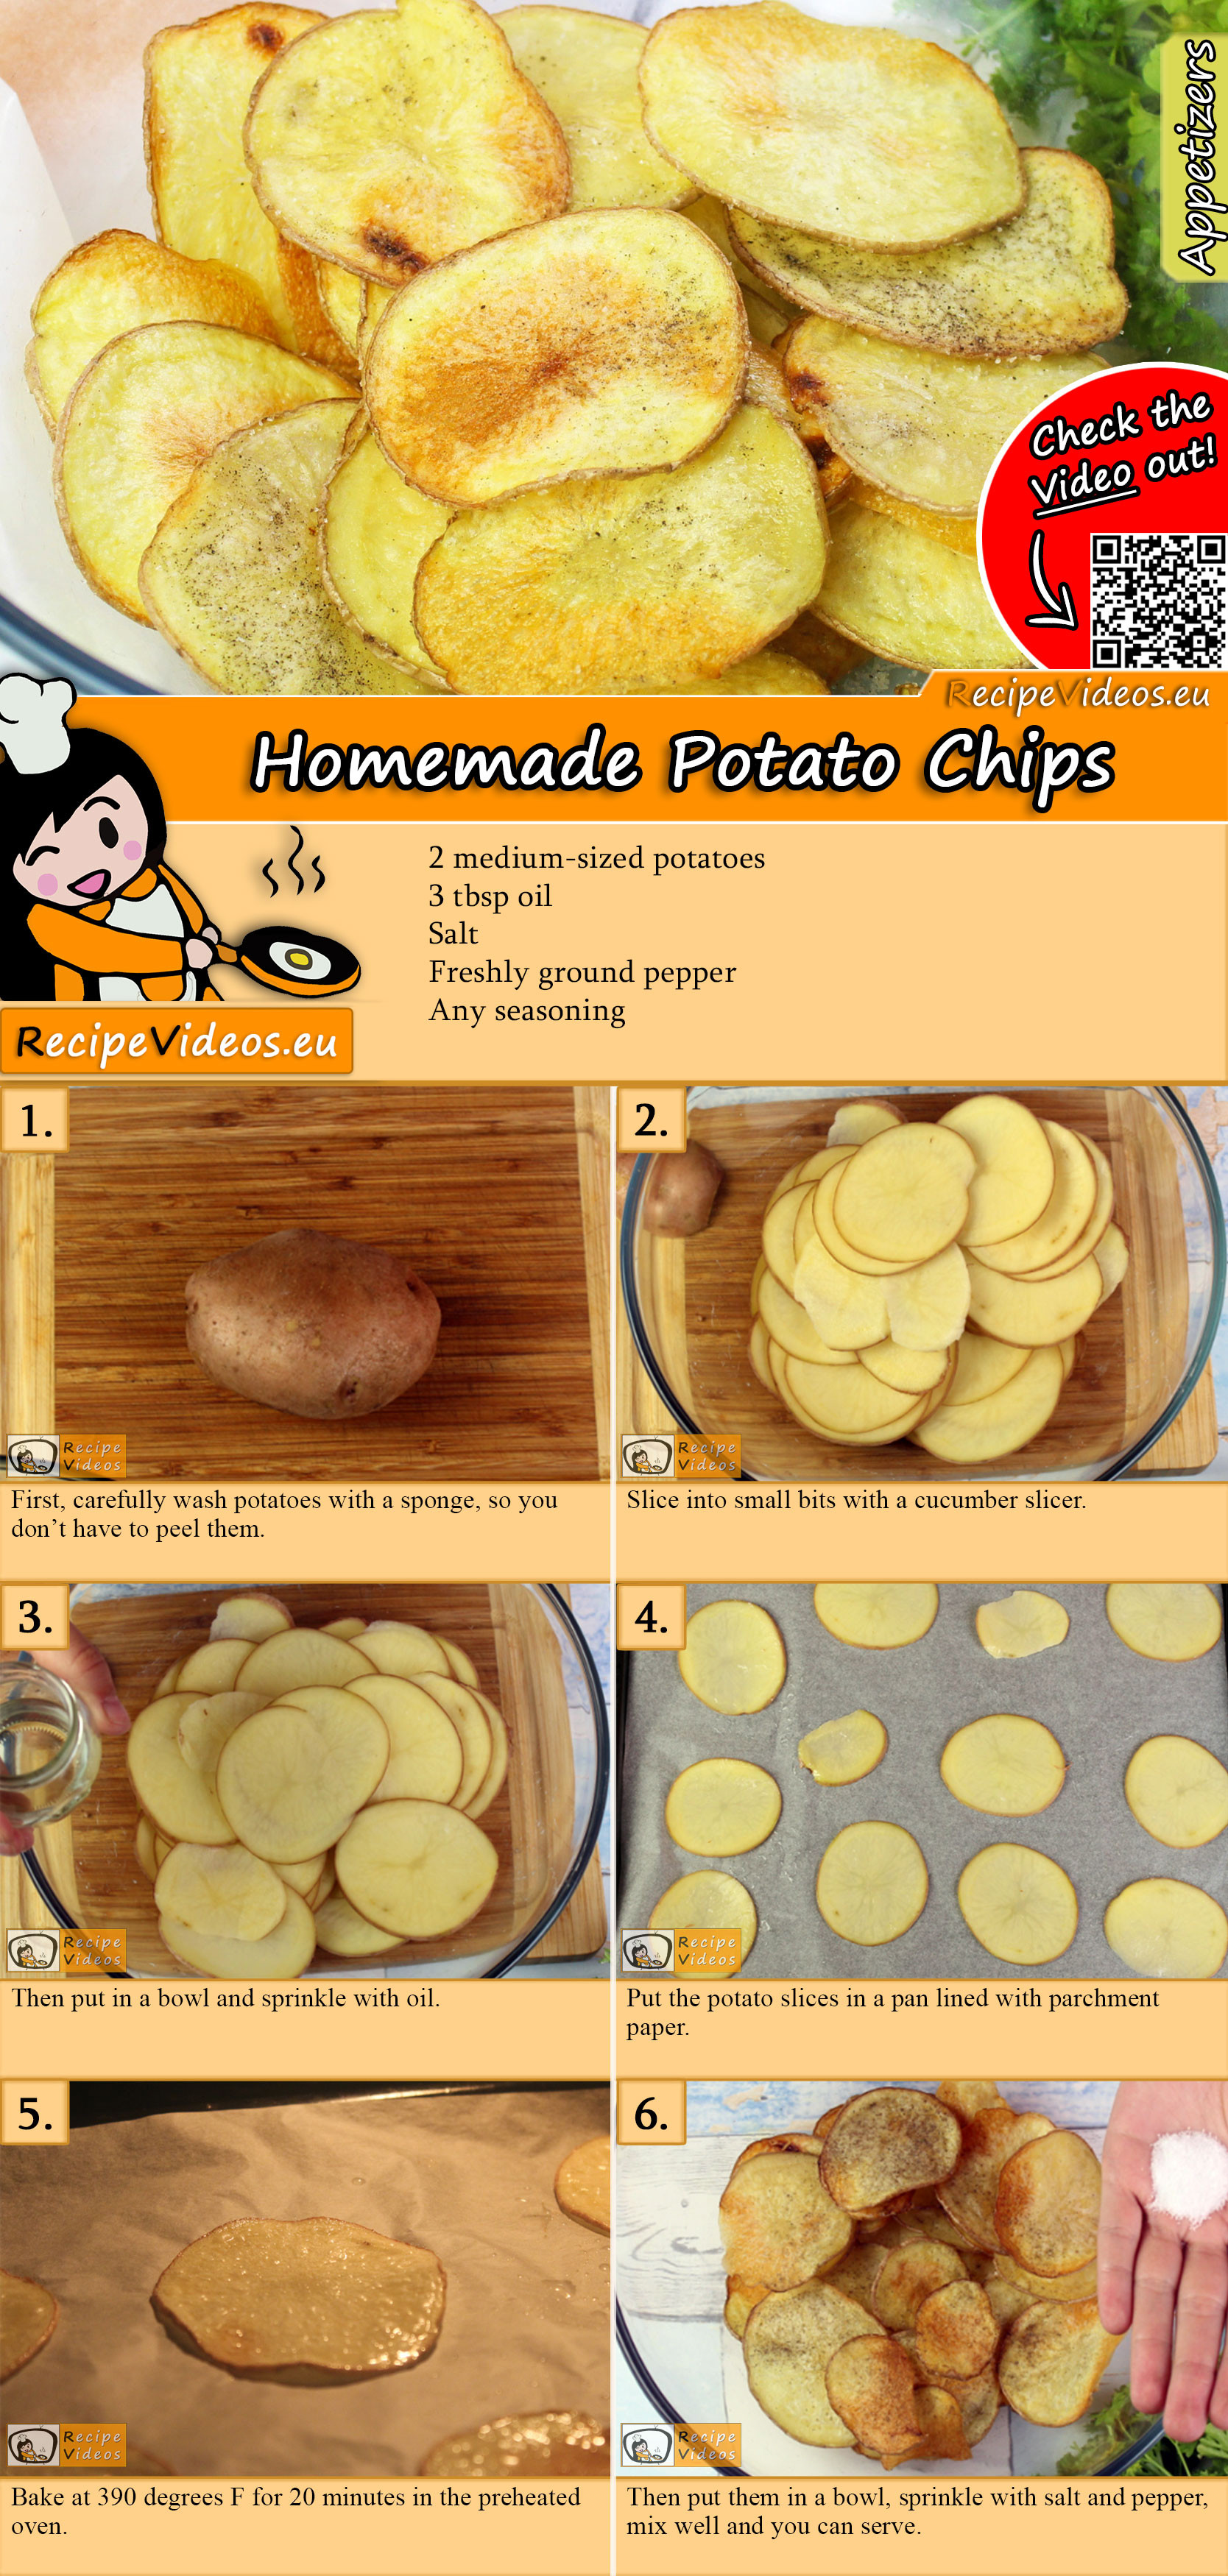 Homemade Potato Chips recipe with video